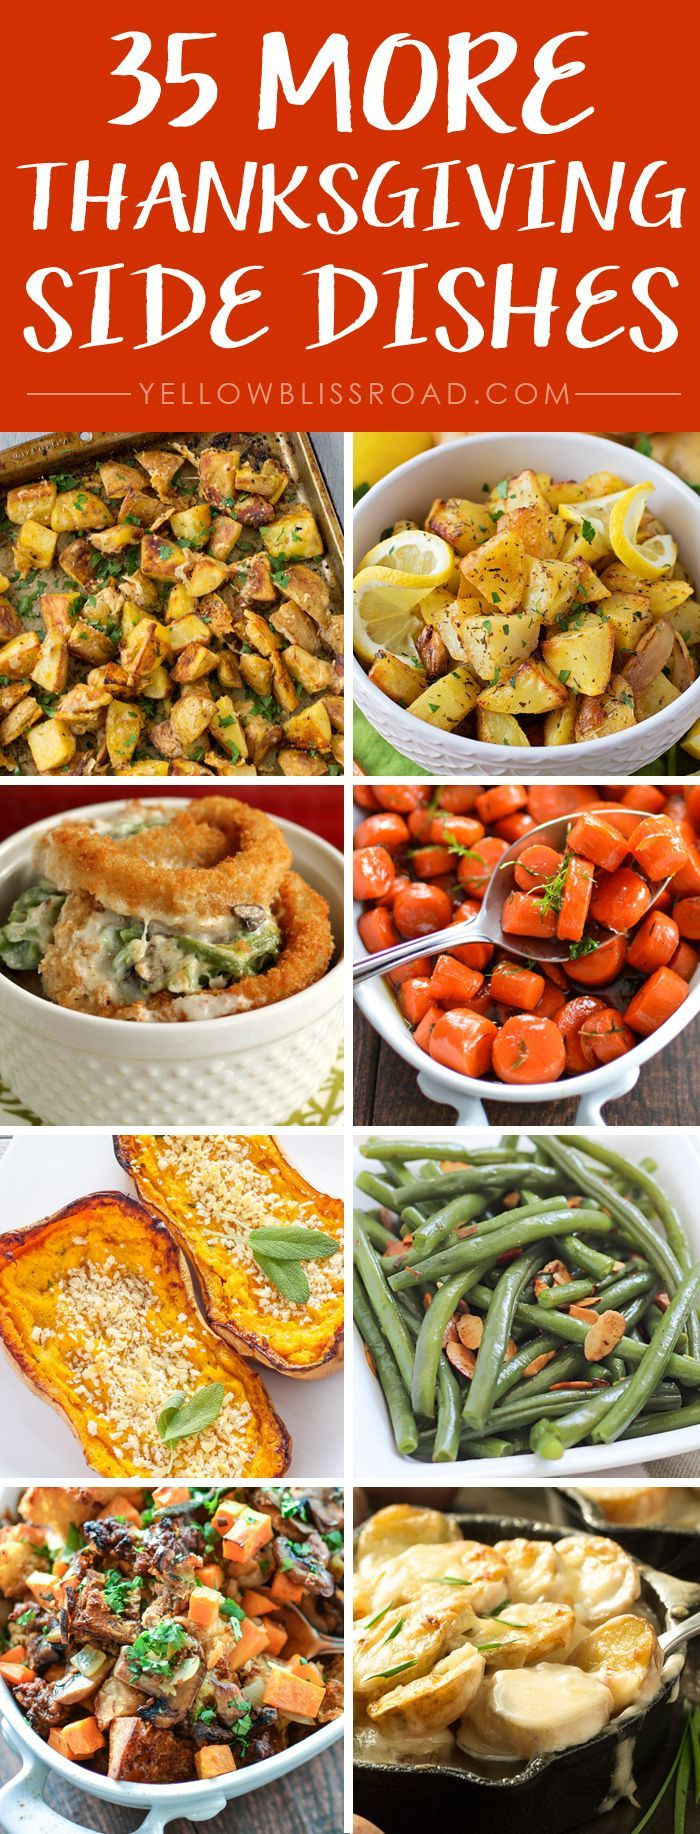 Thanksgiving Side Dishes Ideas  17 Best images about Thanksgiving ideas on Pinterest